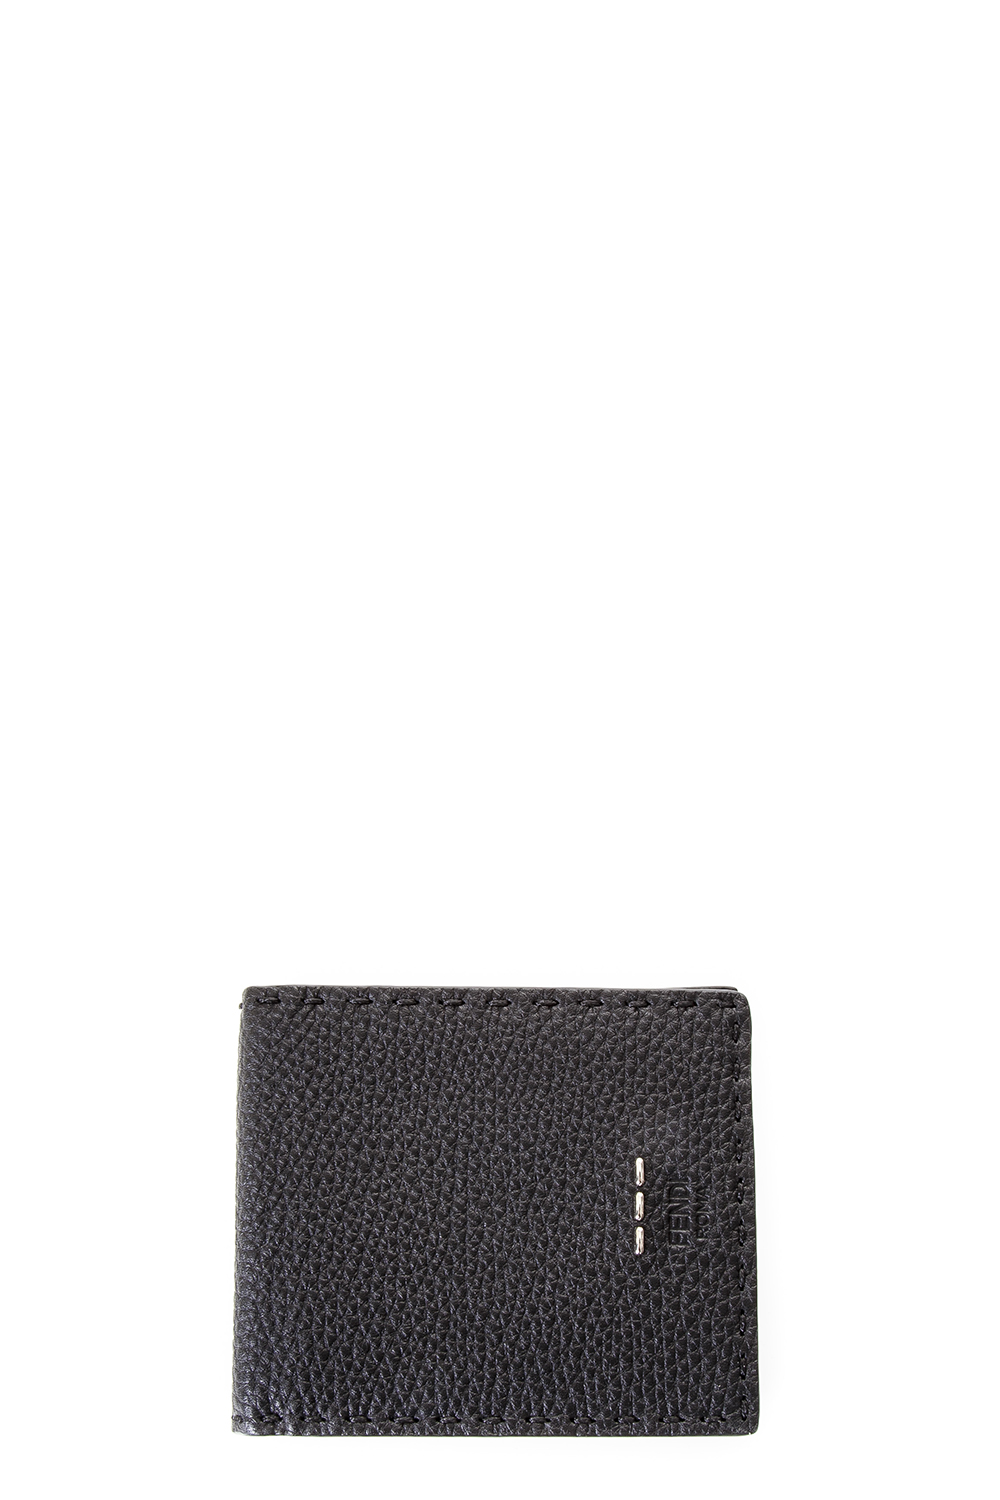 2d41378939 GRAINED LEATHER WALLET WITH LOGO FW 2017